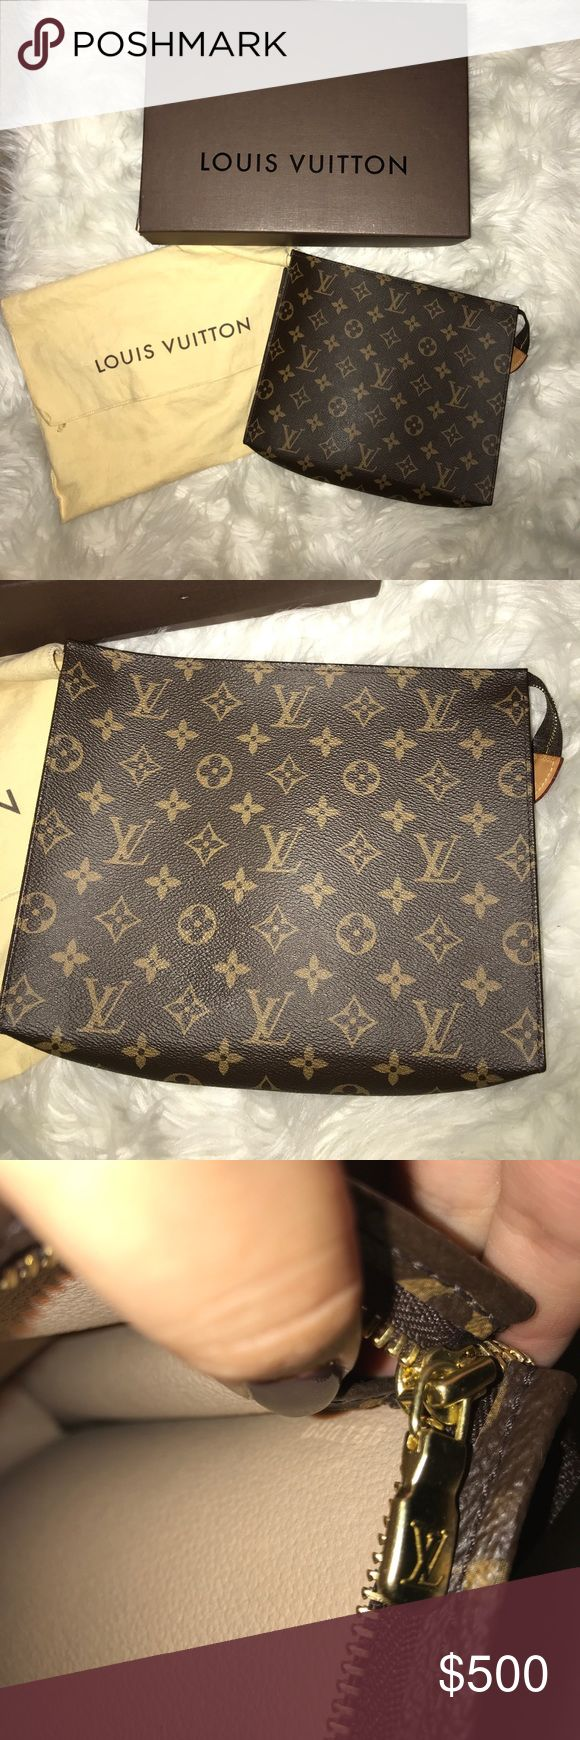 Authentic Louis Vuitton Toiletry 26 Size 26. Great condition. Authentic! Currently sold out online and in most stores. Comes with dust bag and box. Louis Vuitton Bags